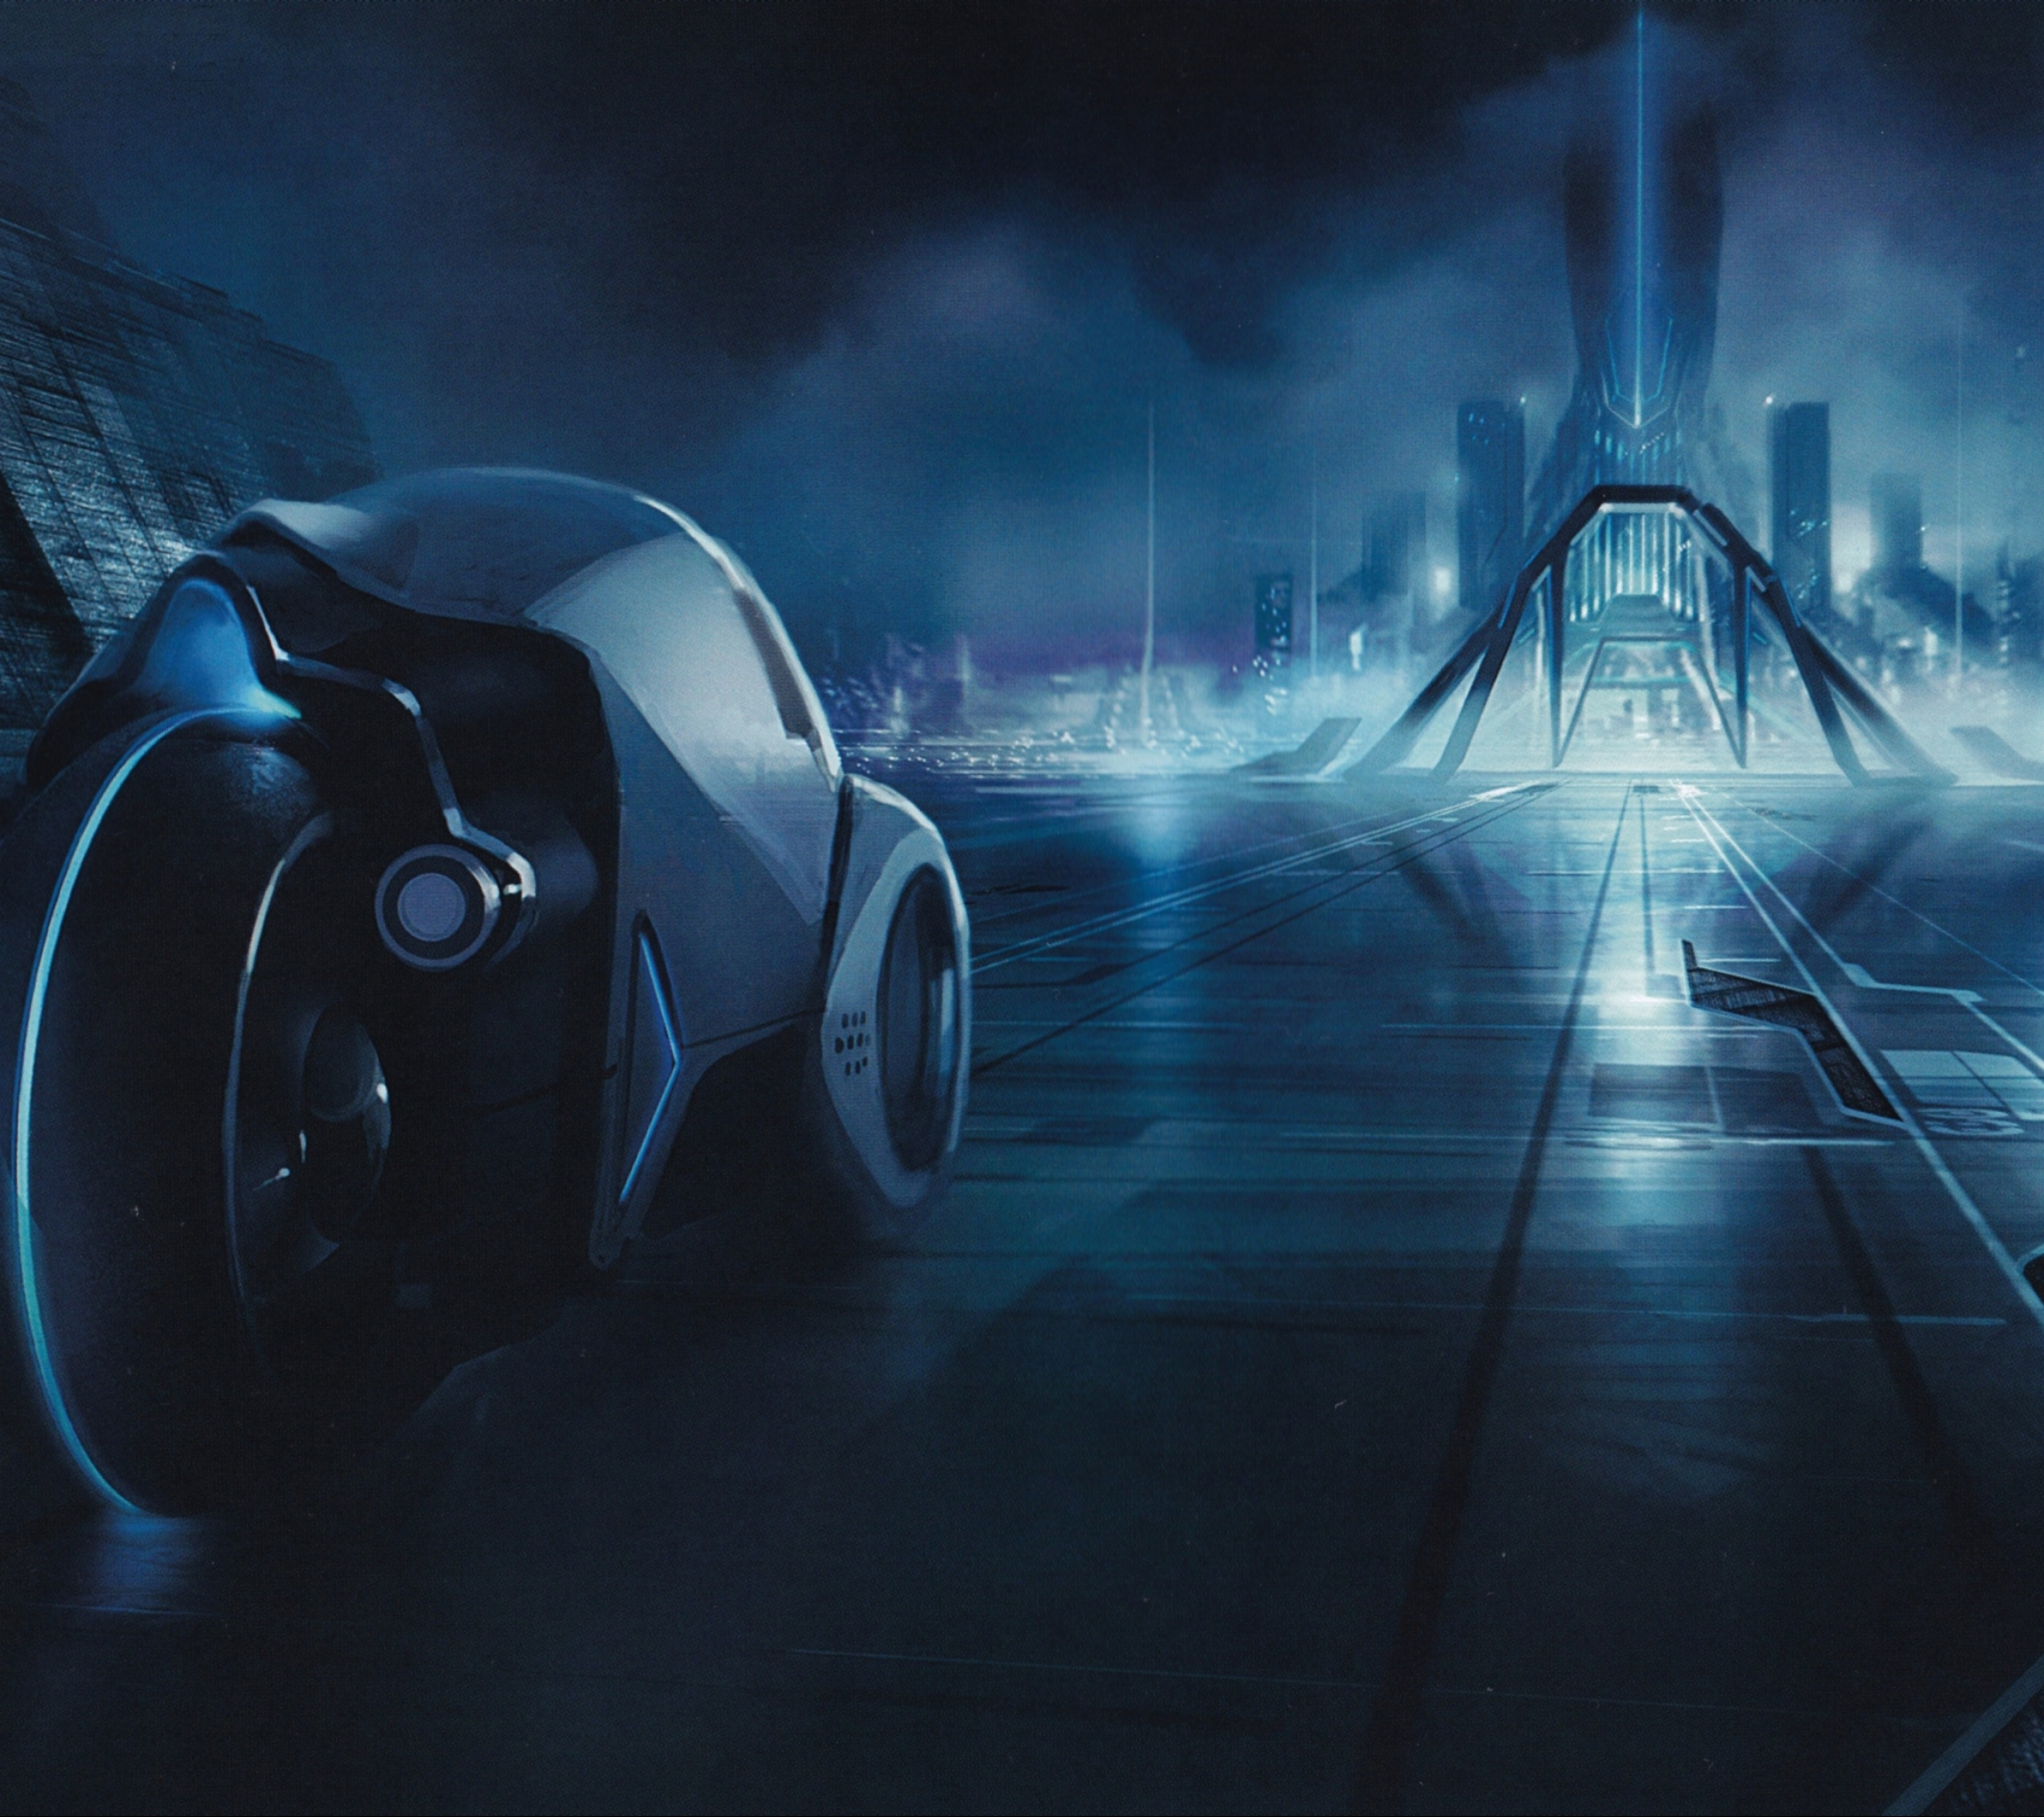 Movie TRON Legacy 2880x2560 Mobile Wallpaper